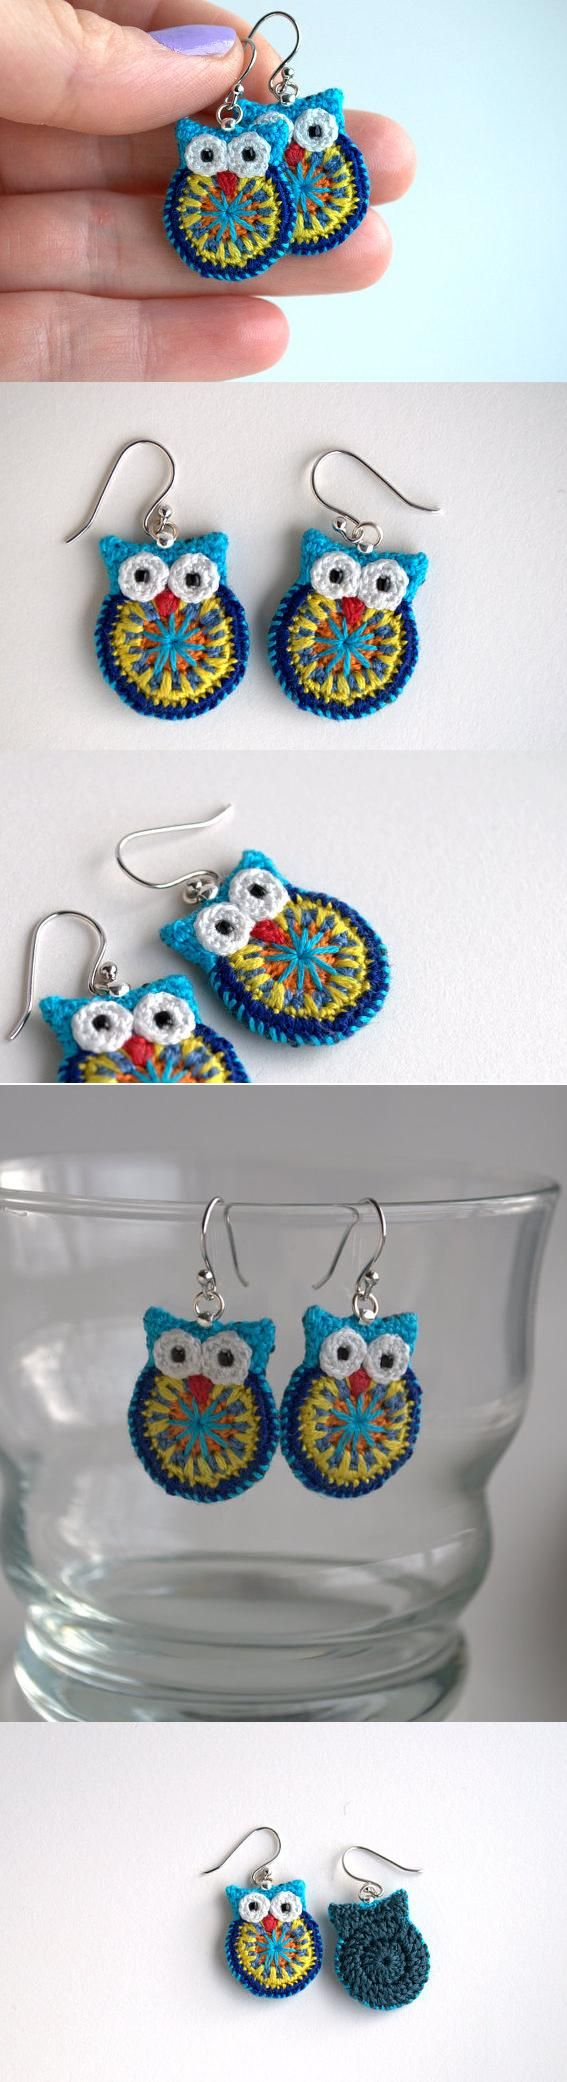 Owl earrings, crochet owl earrings.                                                                                                                                                                                 Mais